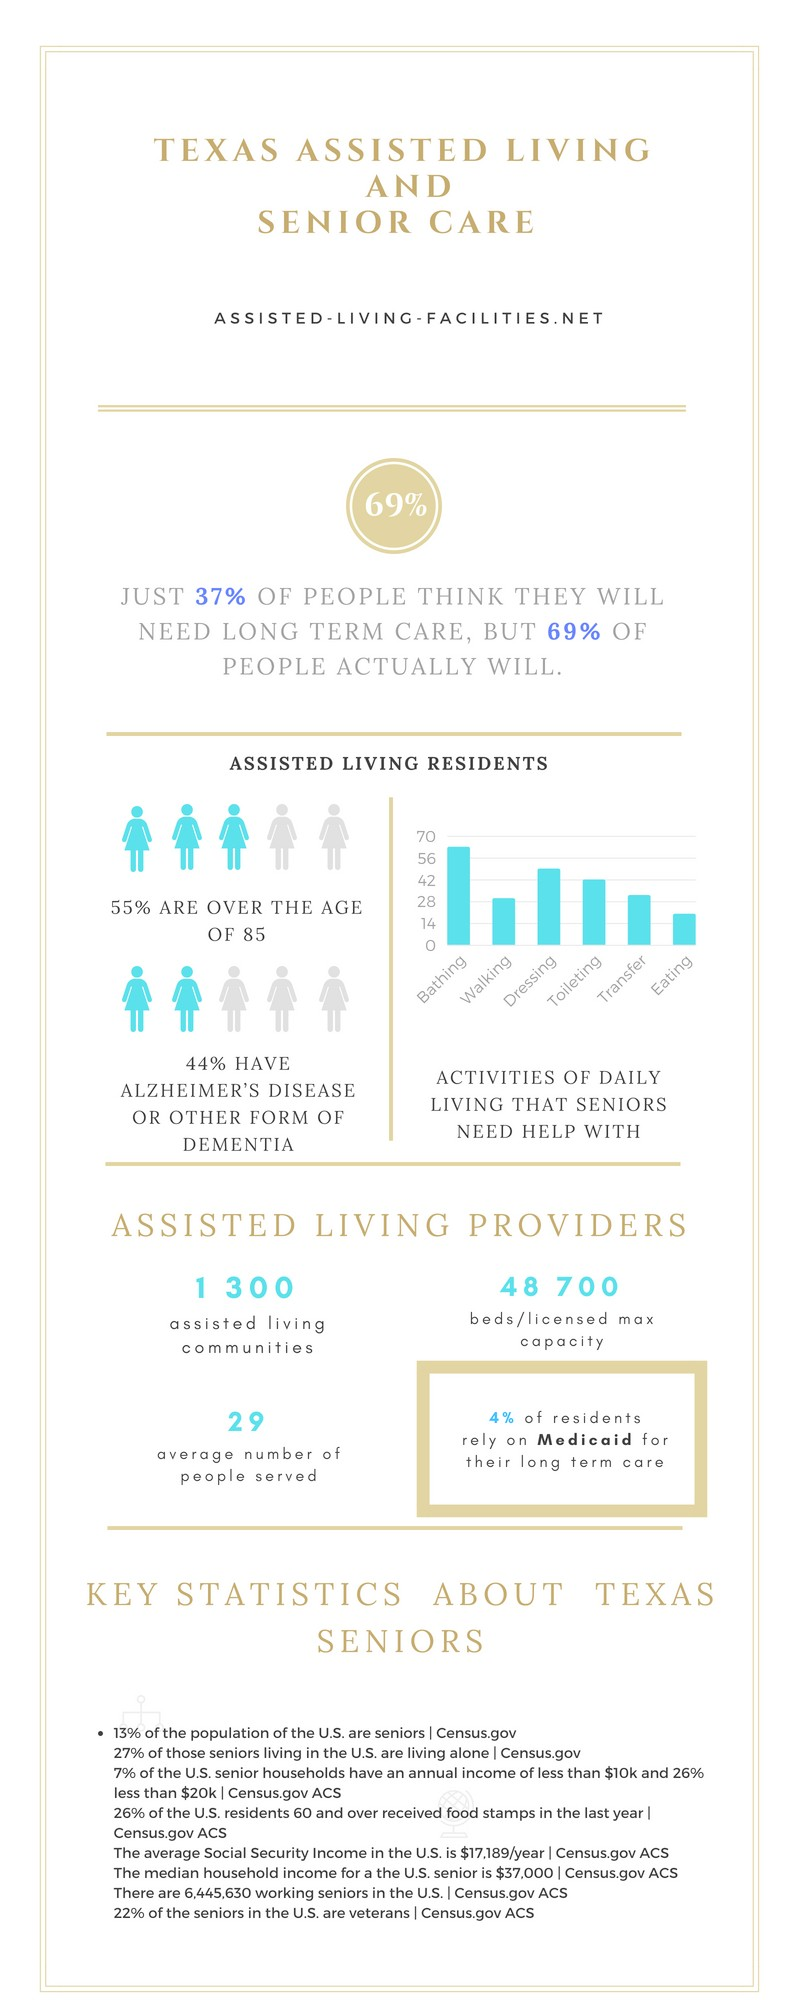 Assisted living in Texas